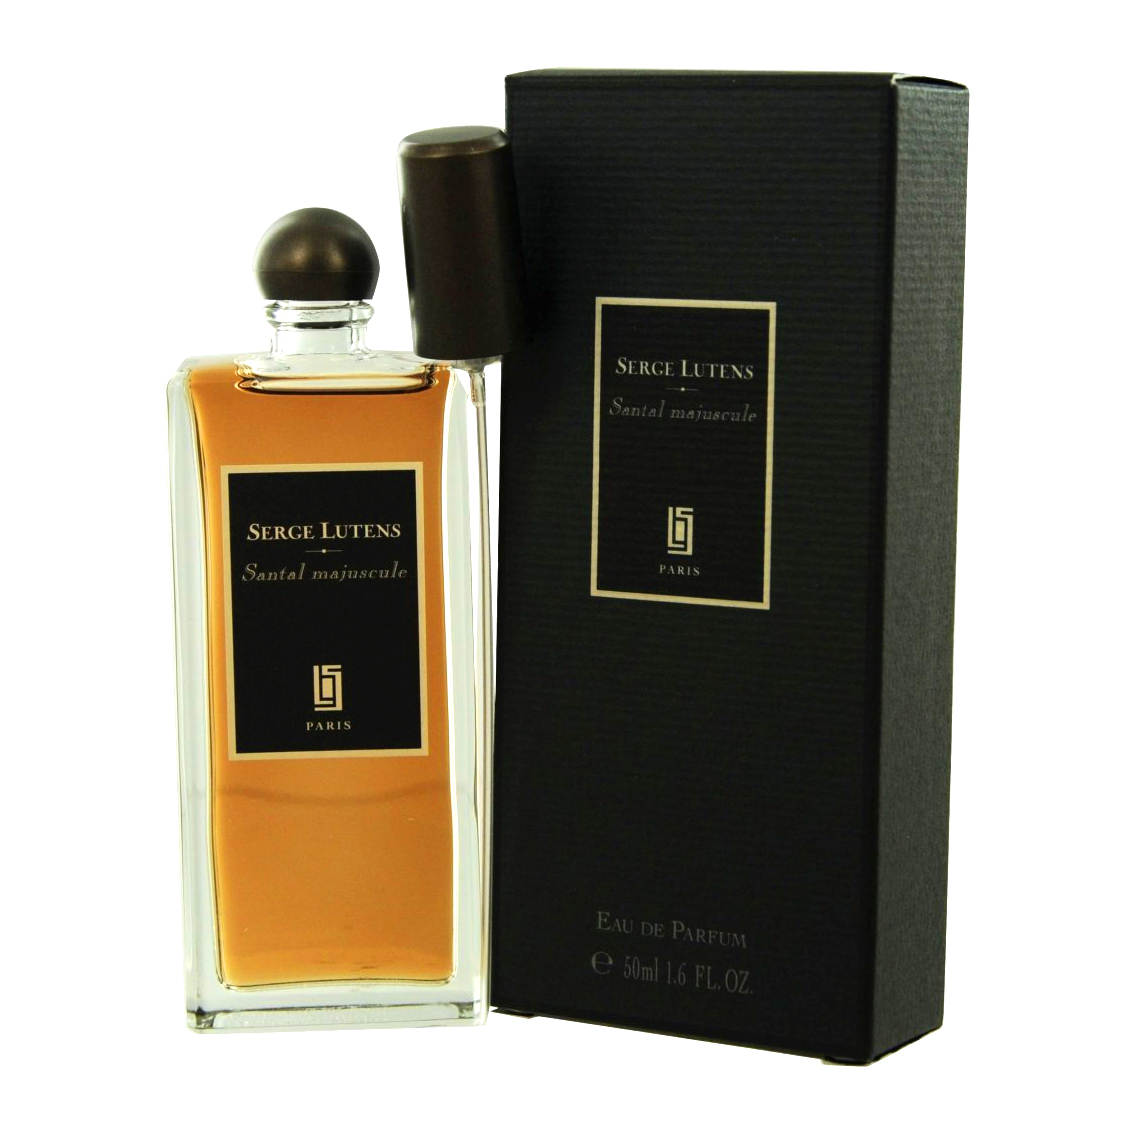 serge lutens santal majuscule 50ml spray eau de parfum ebay. Black Bedroom Furniture Sets. Home Design Ideas